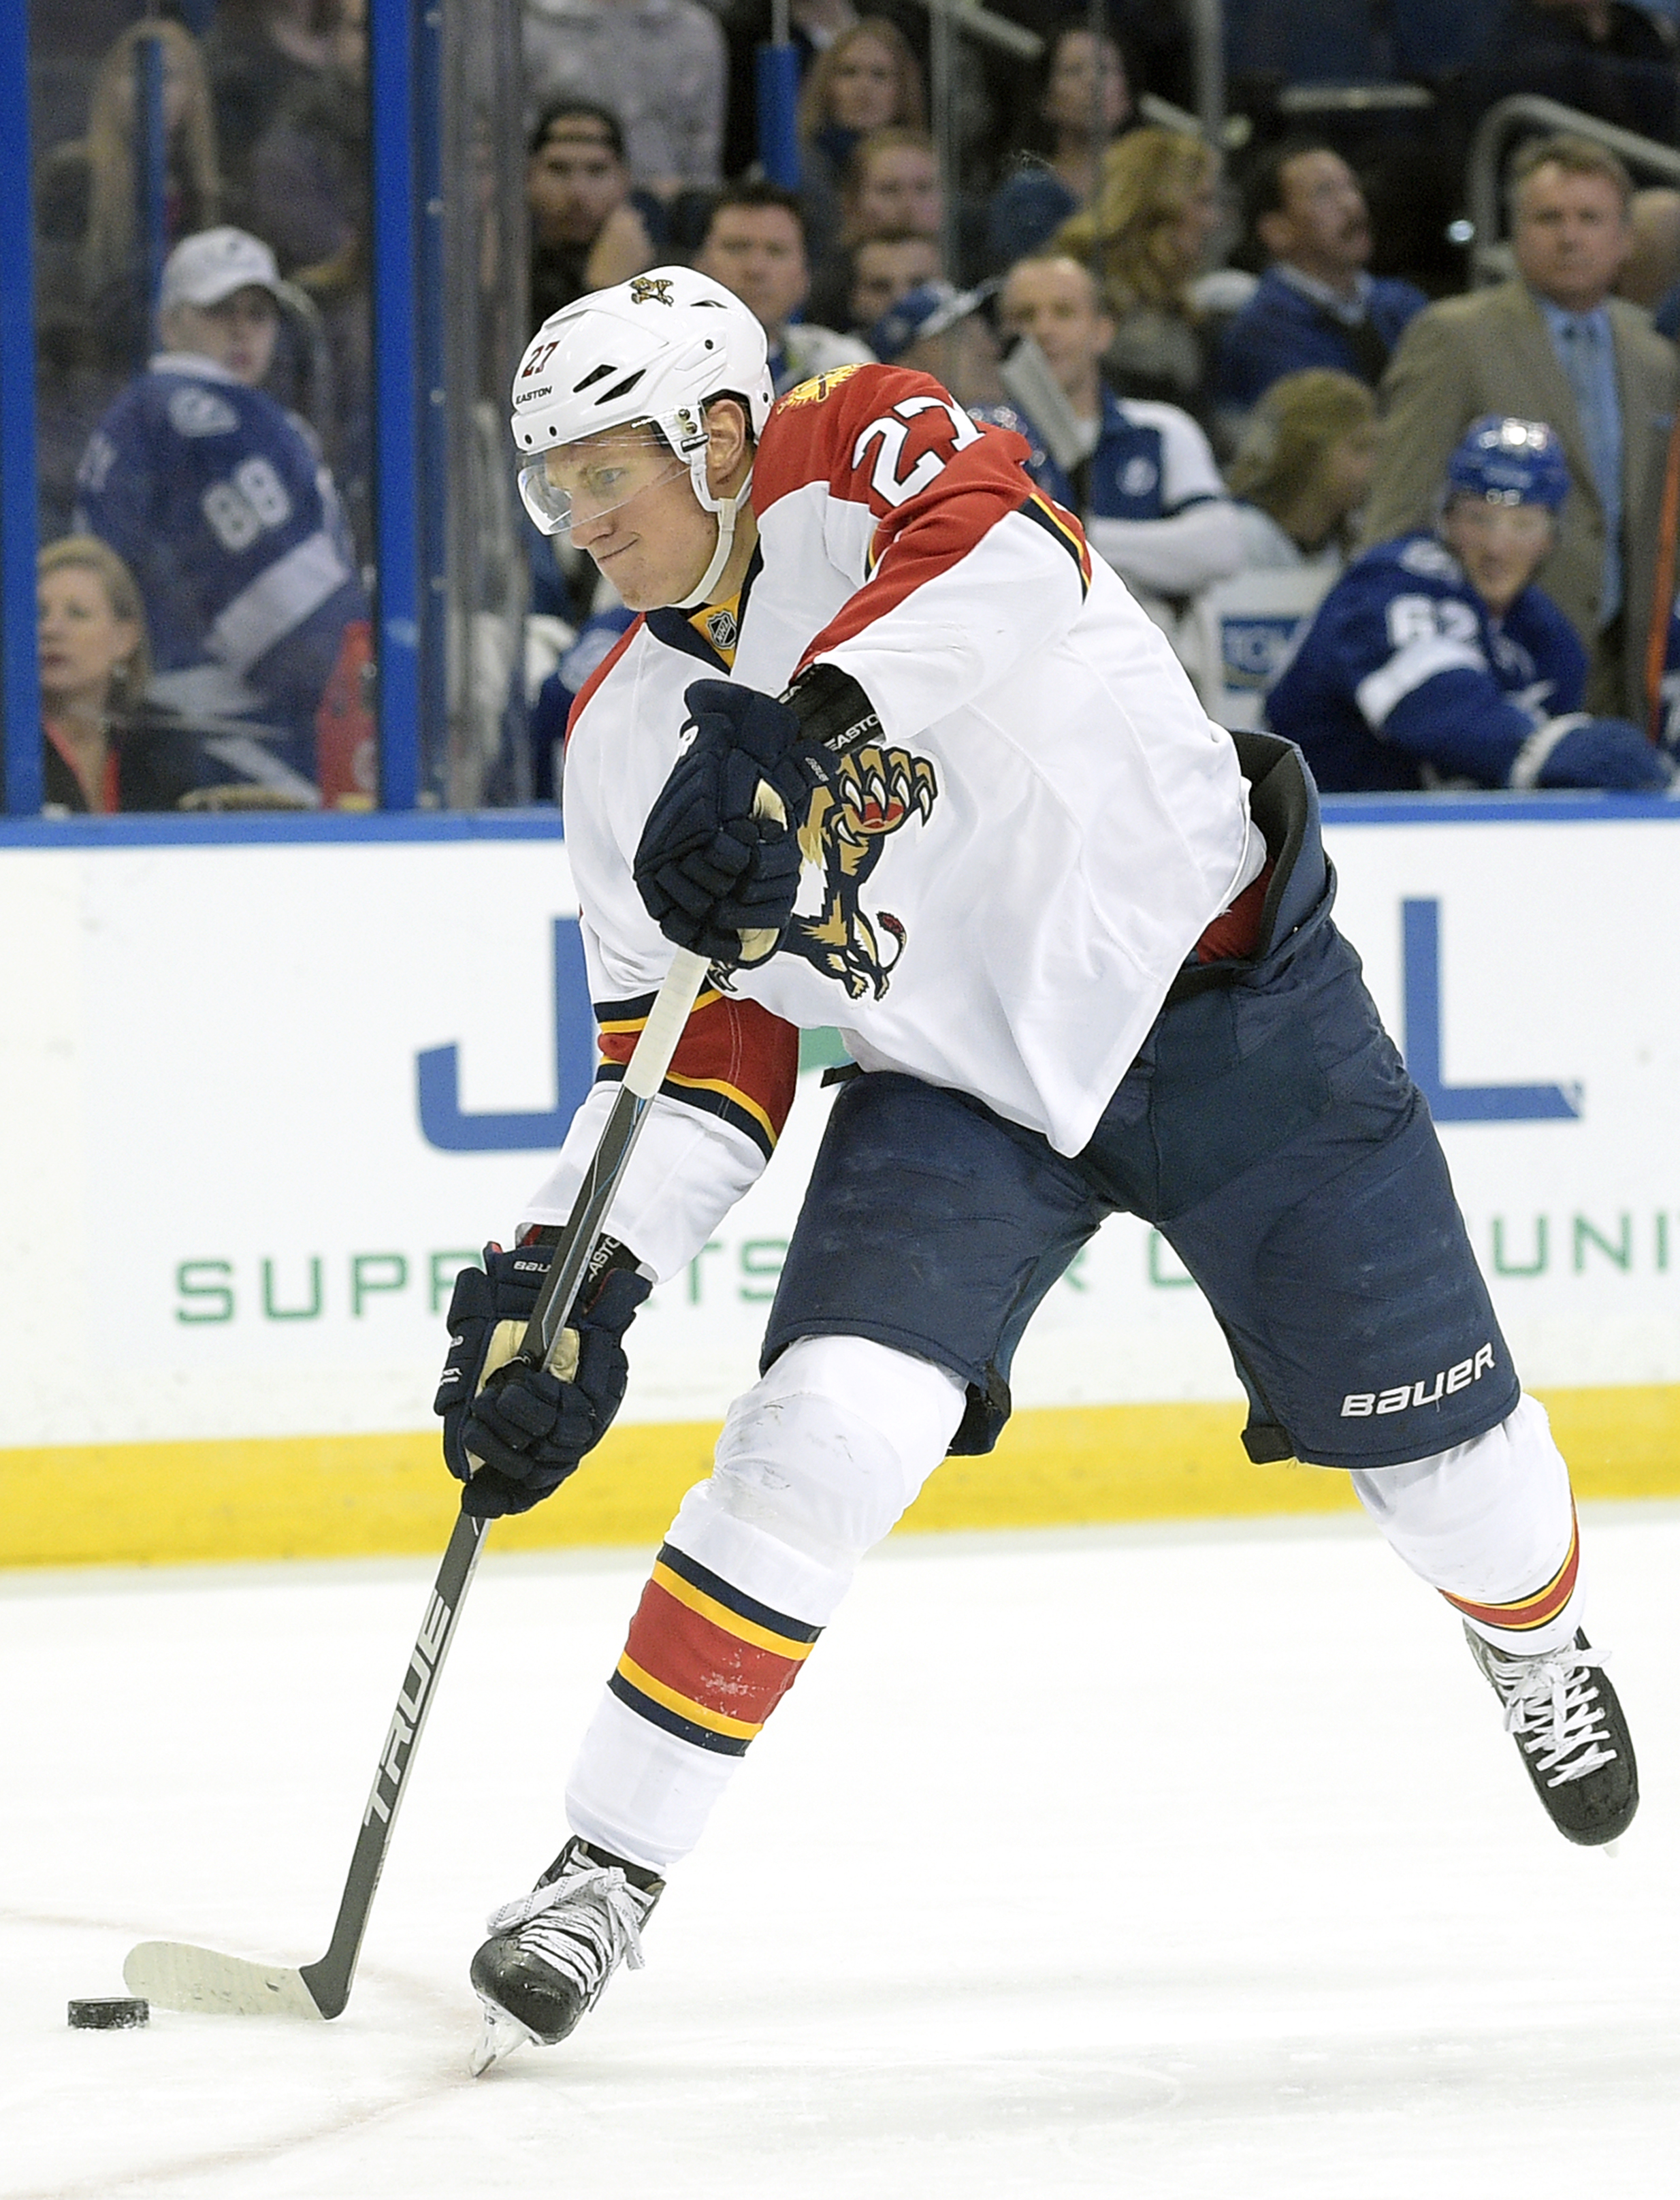 Florida Panthers center Nick Bjugstad attempts a shot during the first period of an NHL hockey game against the Tampa Bay Lightning in Tampa, Fla., Sunday, Jan. 17, 2016. (AP Photo/Phelan M. Ebenhack)